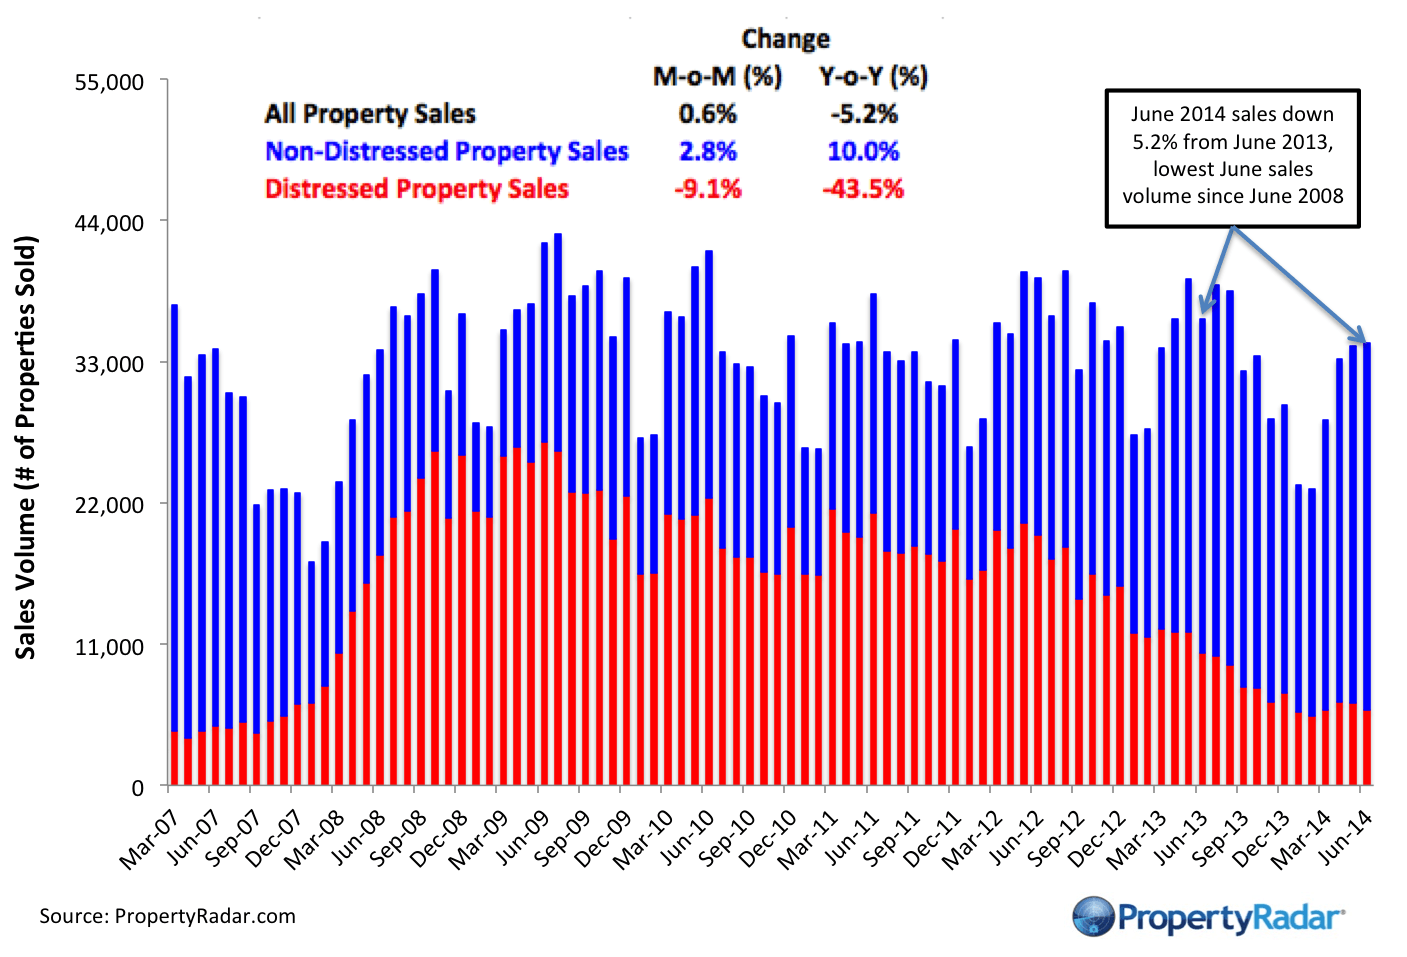 Median Prices Fall in 13 of California's Largest 26 CountiesYear-to-Date Sales Lowest Since 2008